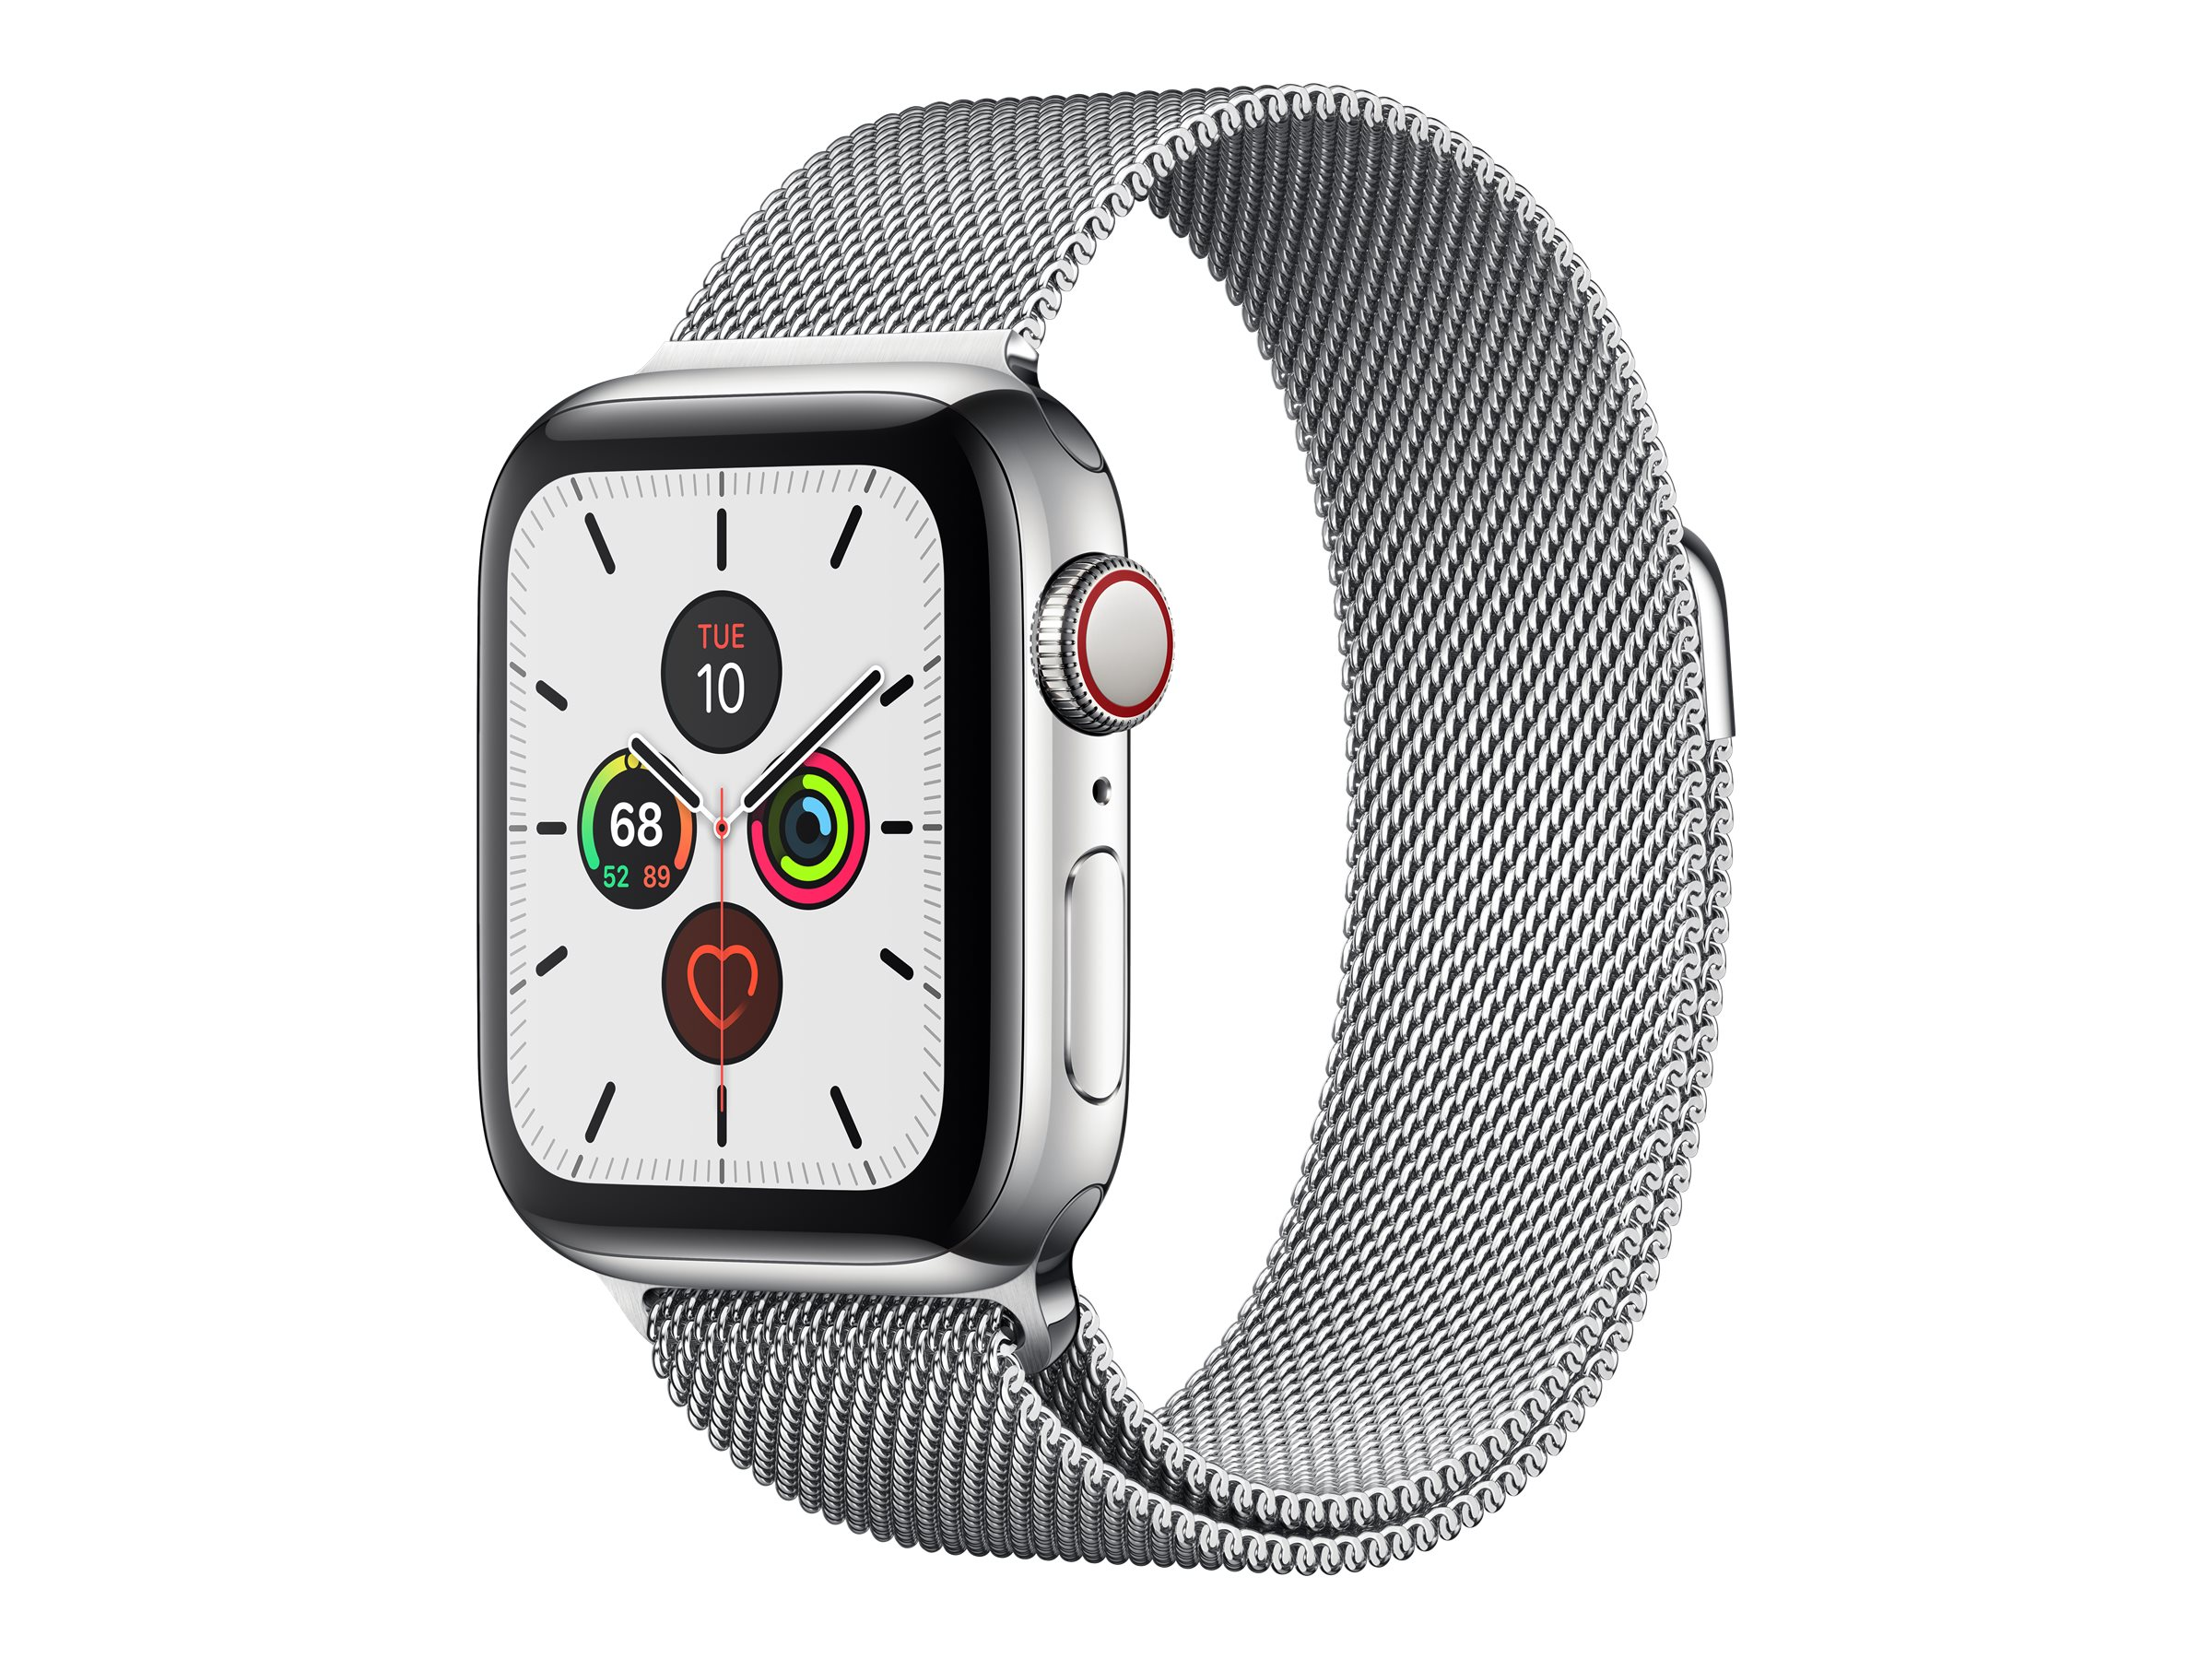 Apple Watch Series 5 (GPS + Cellular) - stainless steel - smart watch with milanese loop - silver - 32 GB - not specifi…